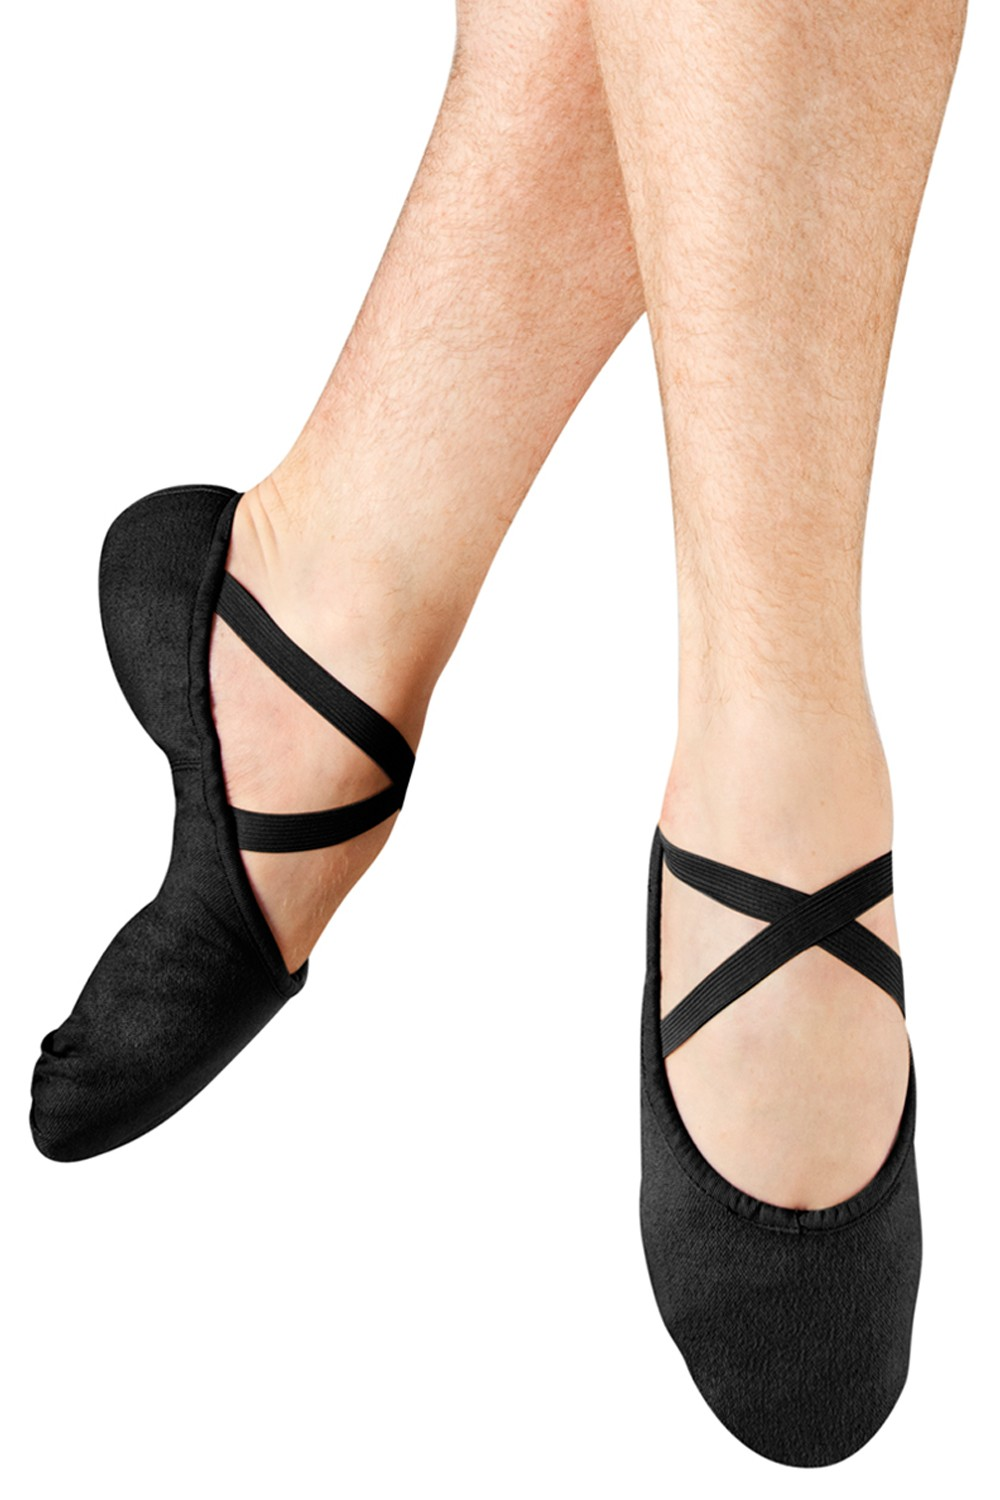 Pump - Mens Men's Ballet Shoes